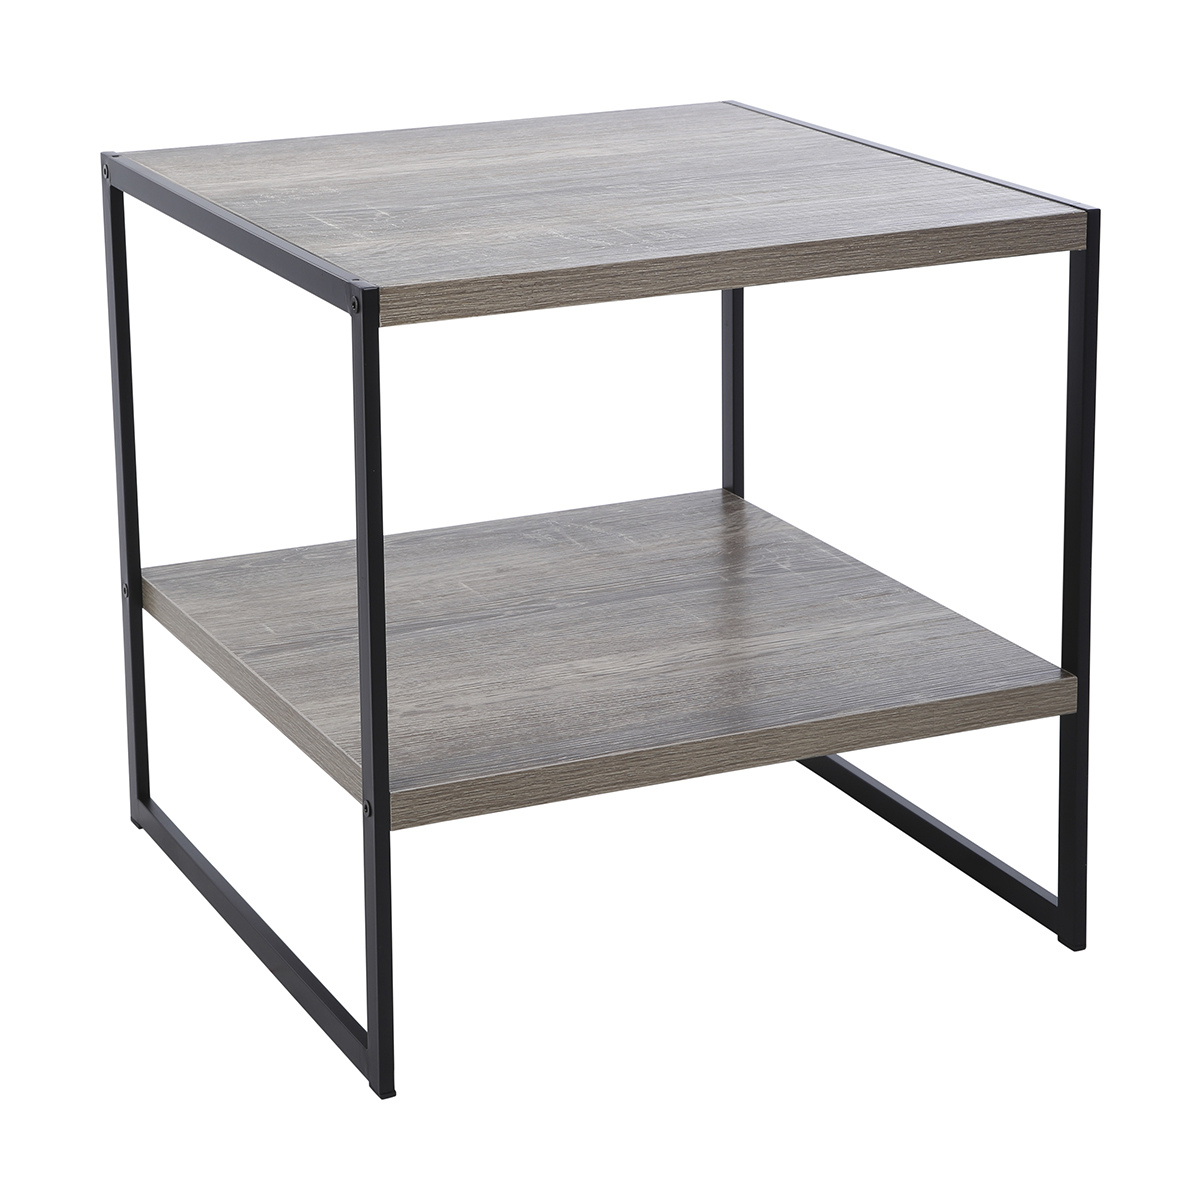 industrial side table kmart furniture end tables spray paint top round wood accent acrylic cocktail small sitting room vintage folding square glass coffee pier reviews pallet